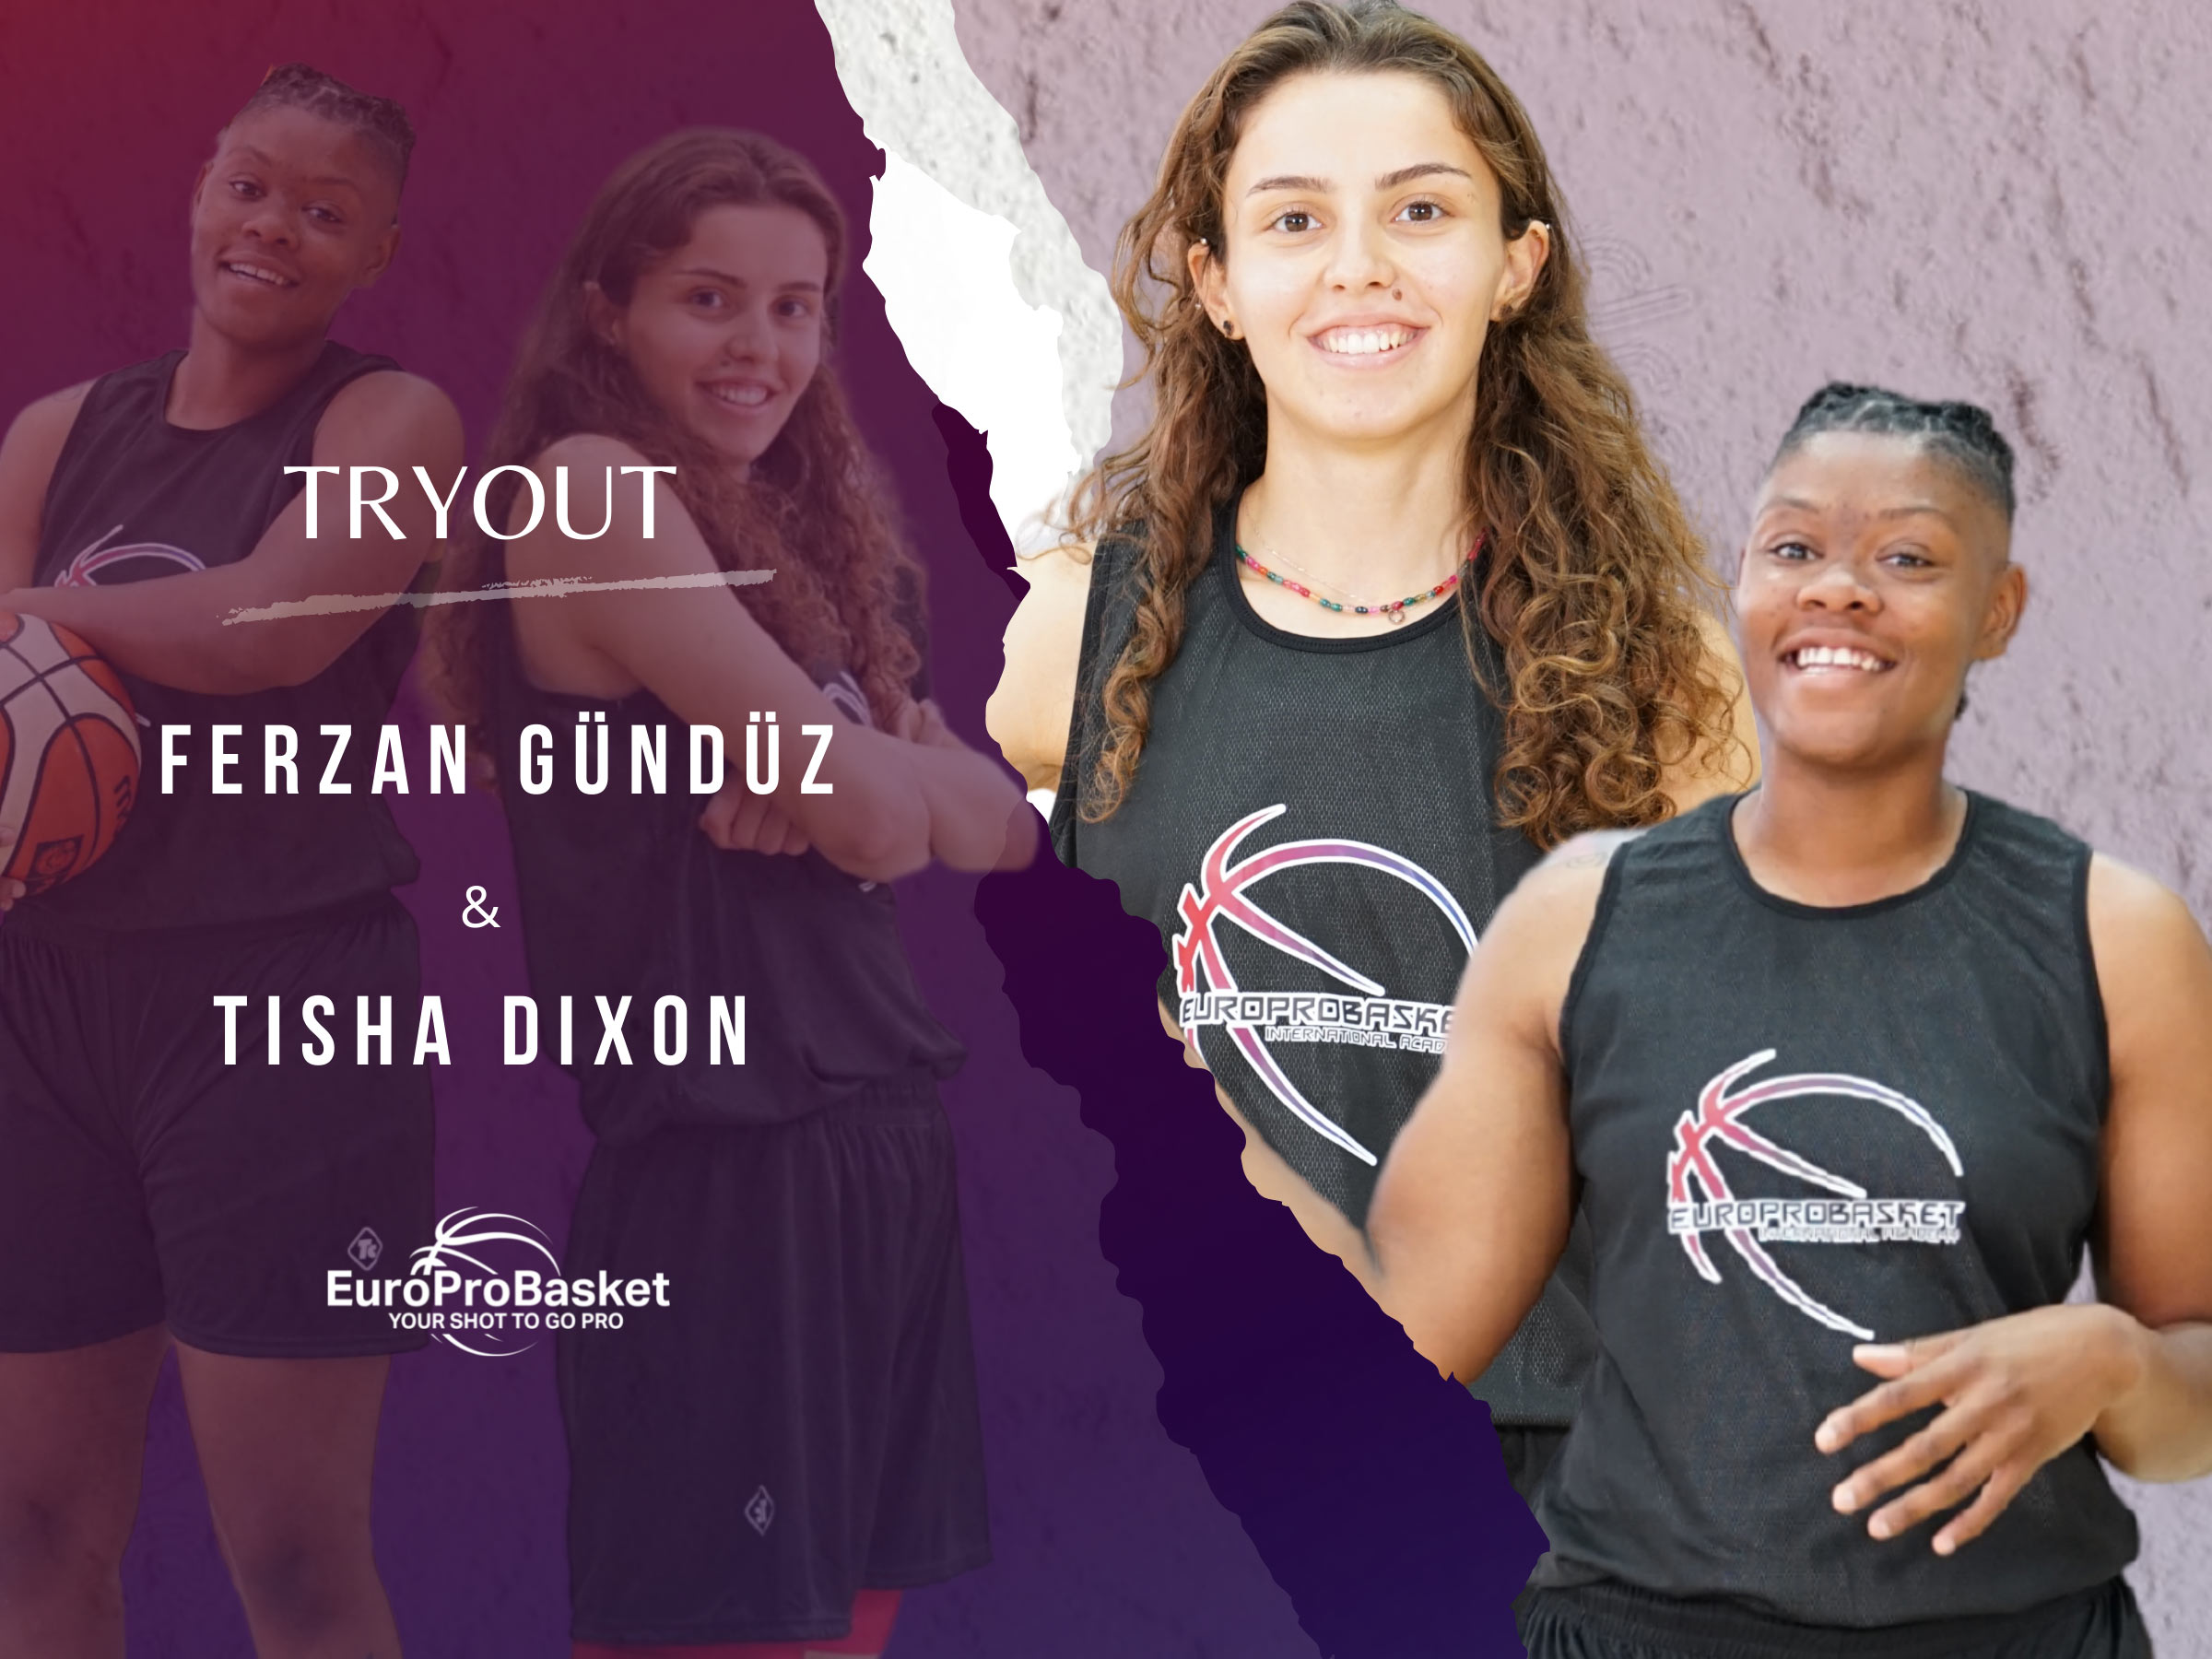 Two Girls on Basketball Tryout After one day in EuroProBasket Program